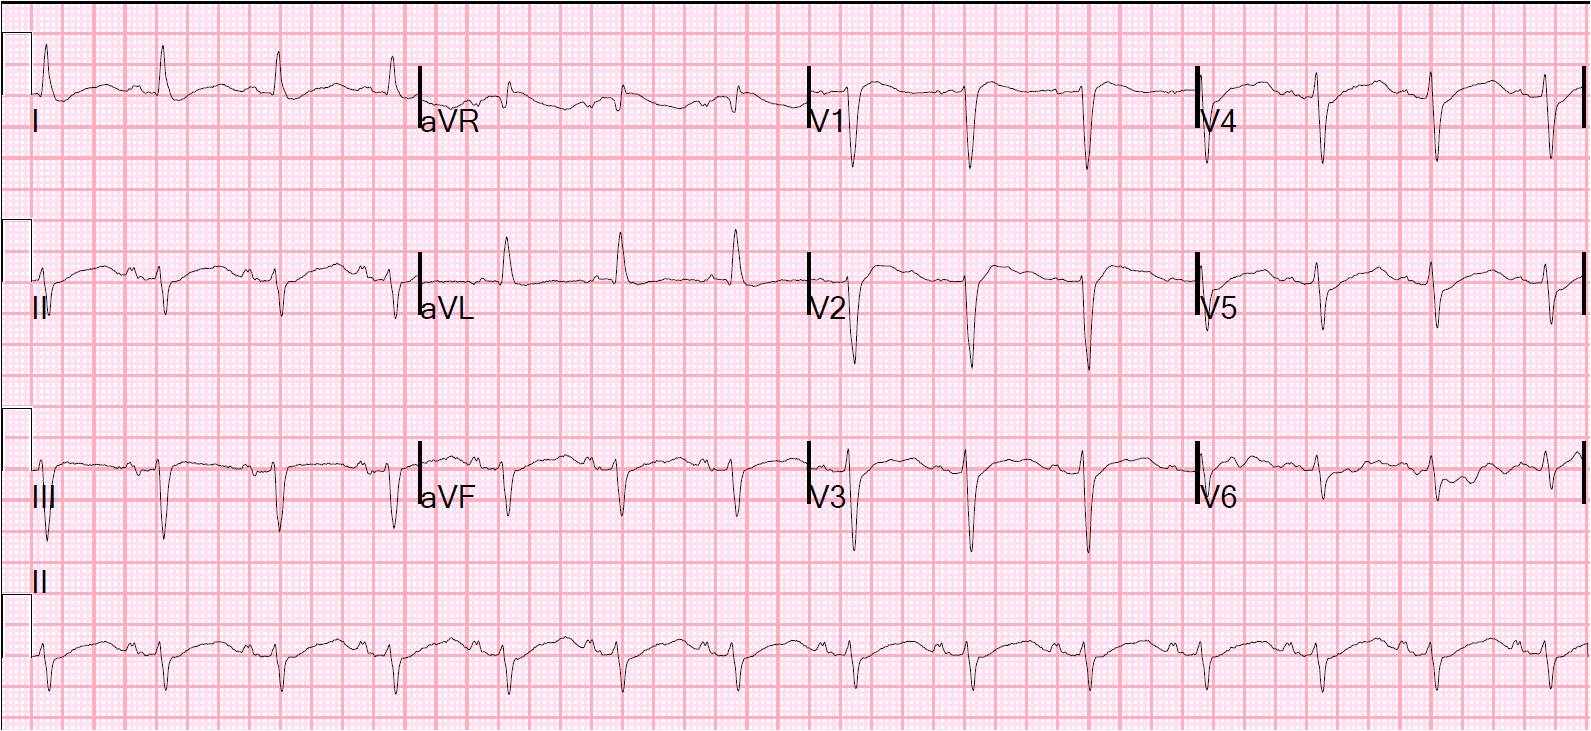 Dr  Smith's ECG Blog: What is the diagnosis? A nearly